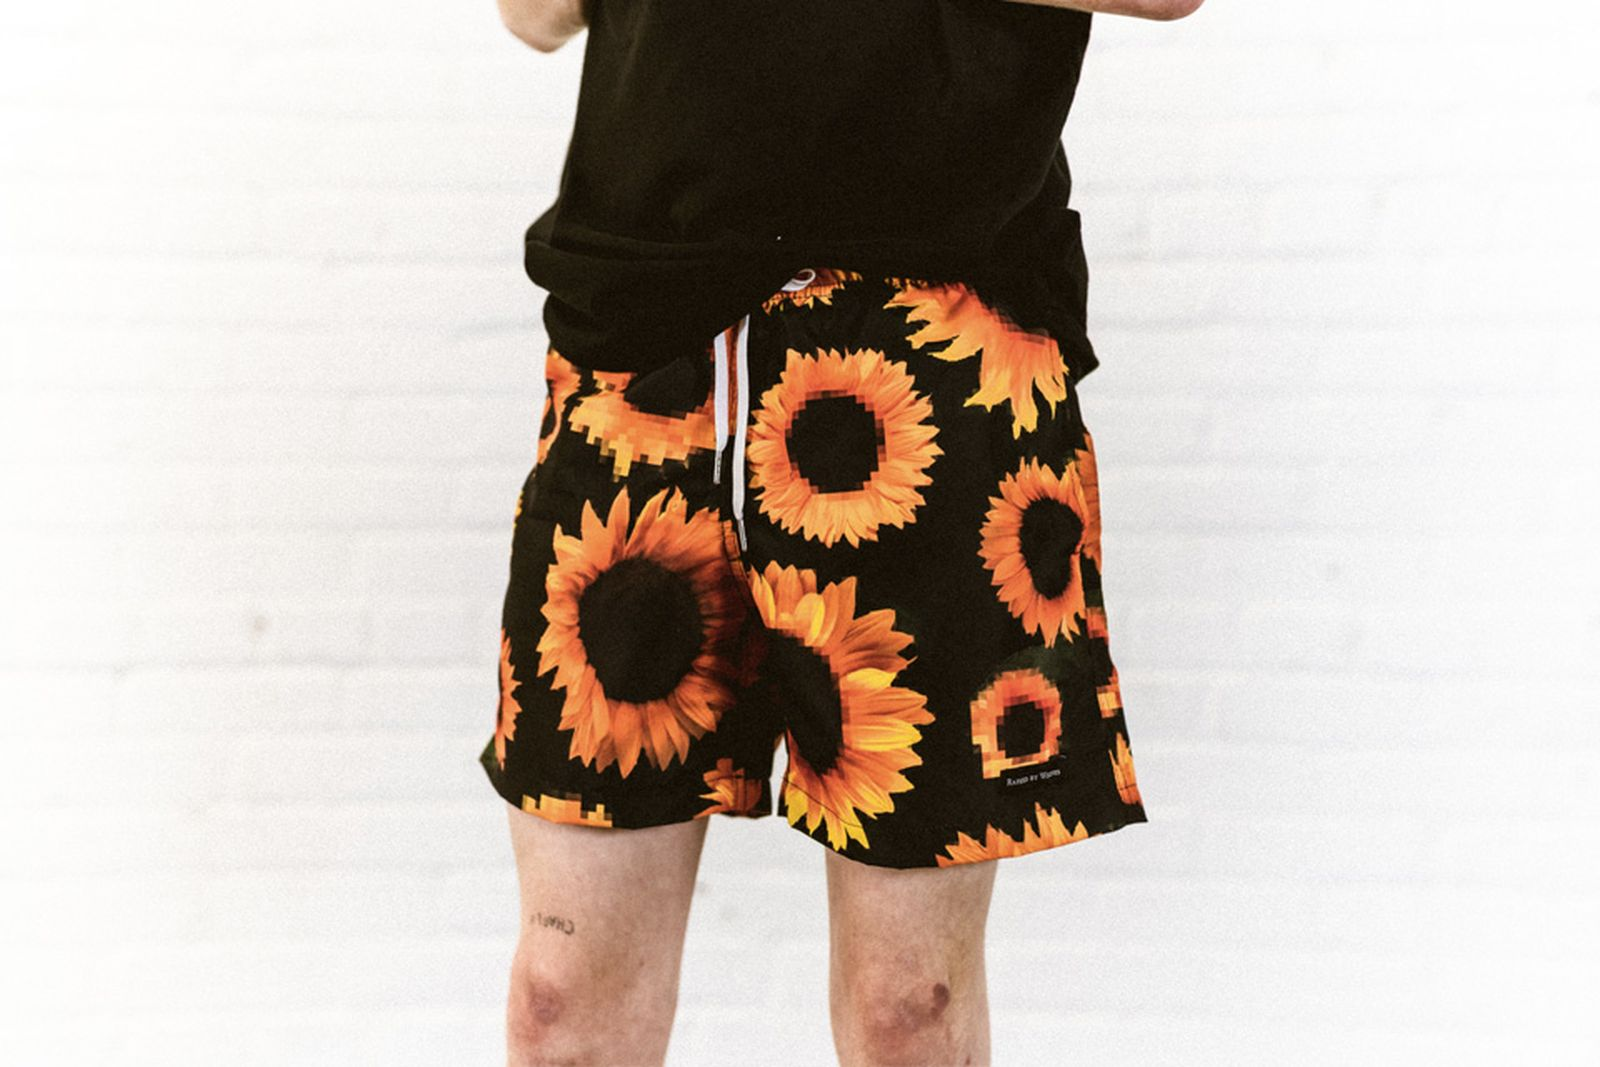 rbw bather raised by wolves surf trunks